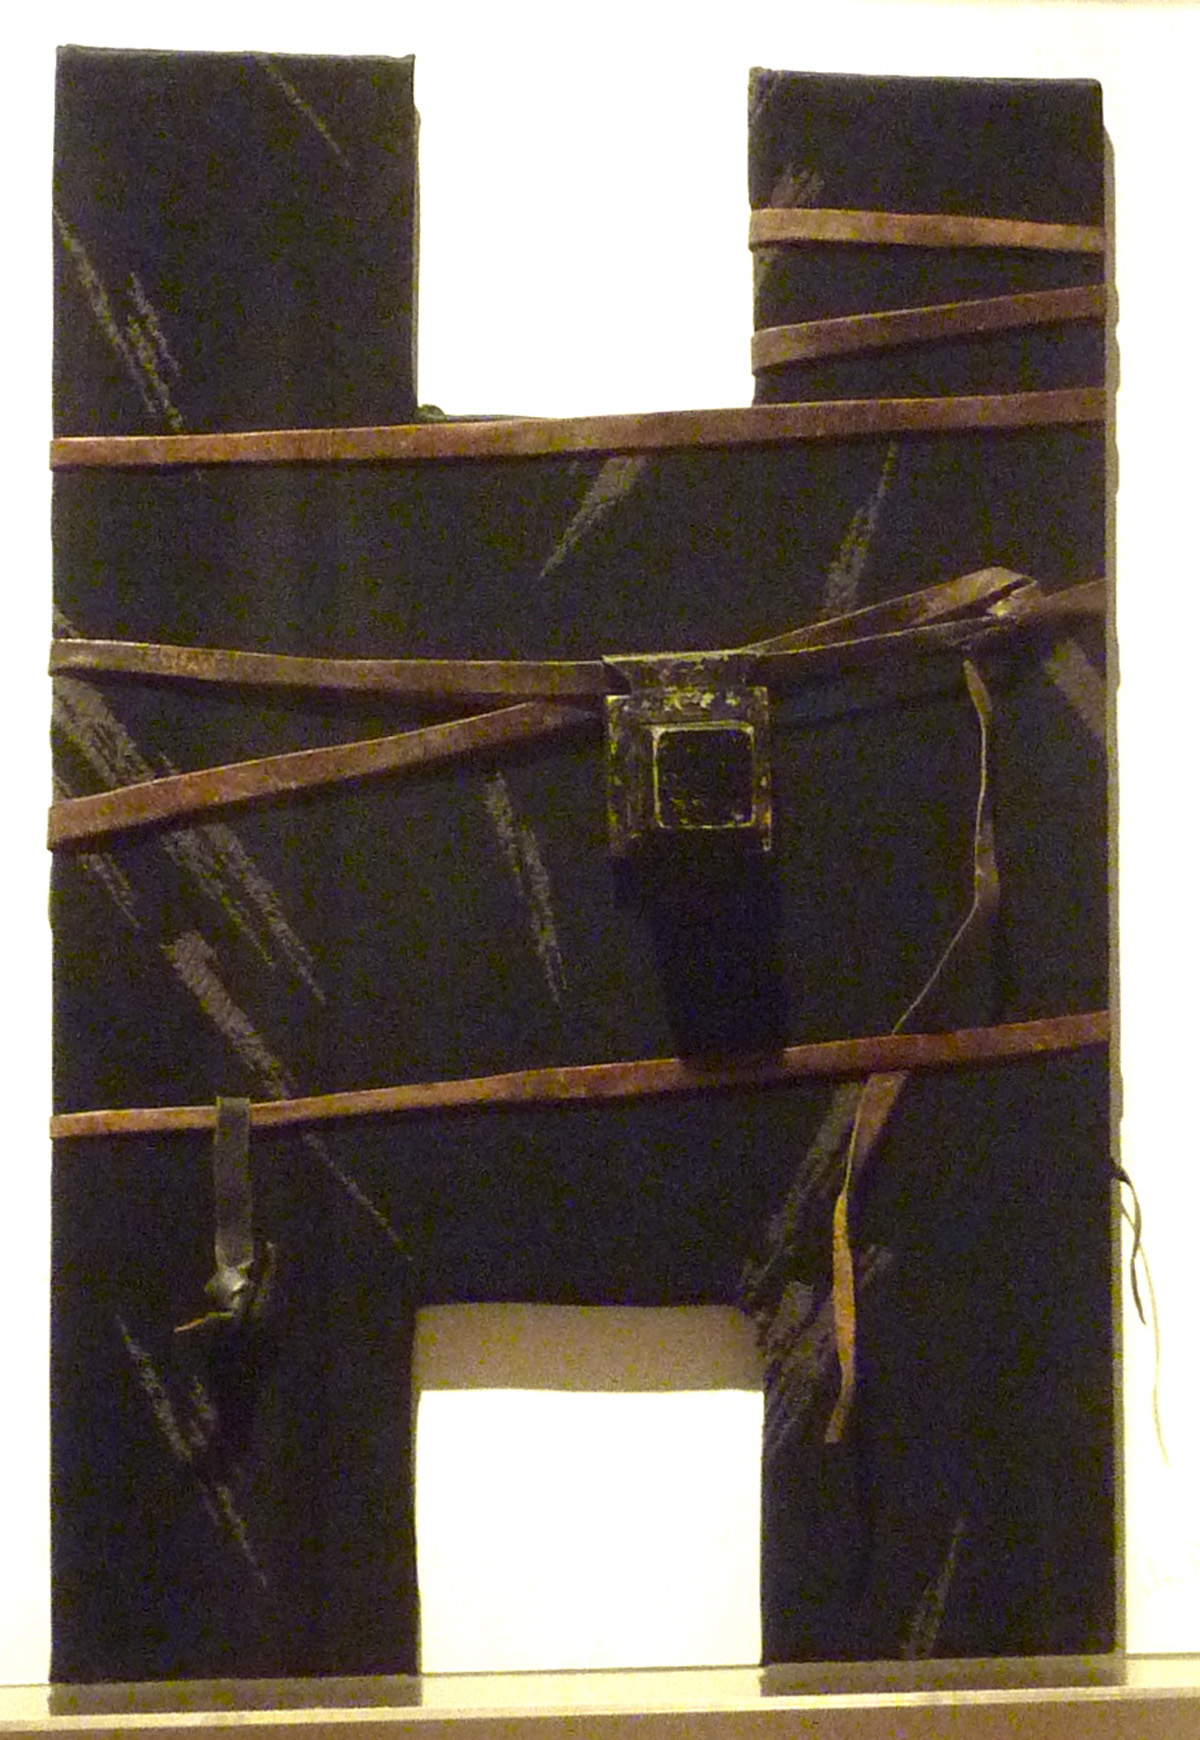 Black Eta (1983) Fabric over wood with pasul tefillin by Ita Aber